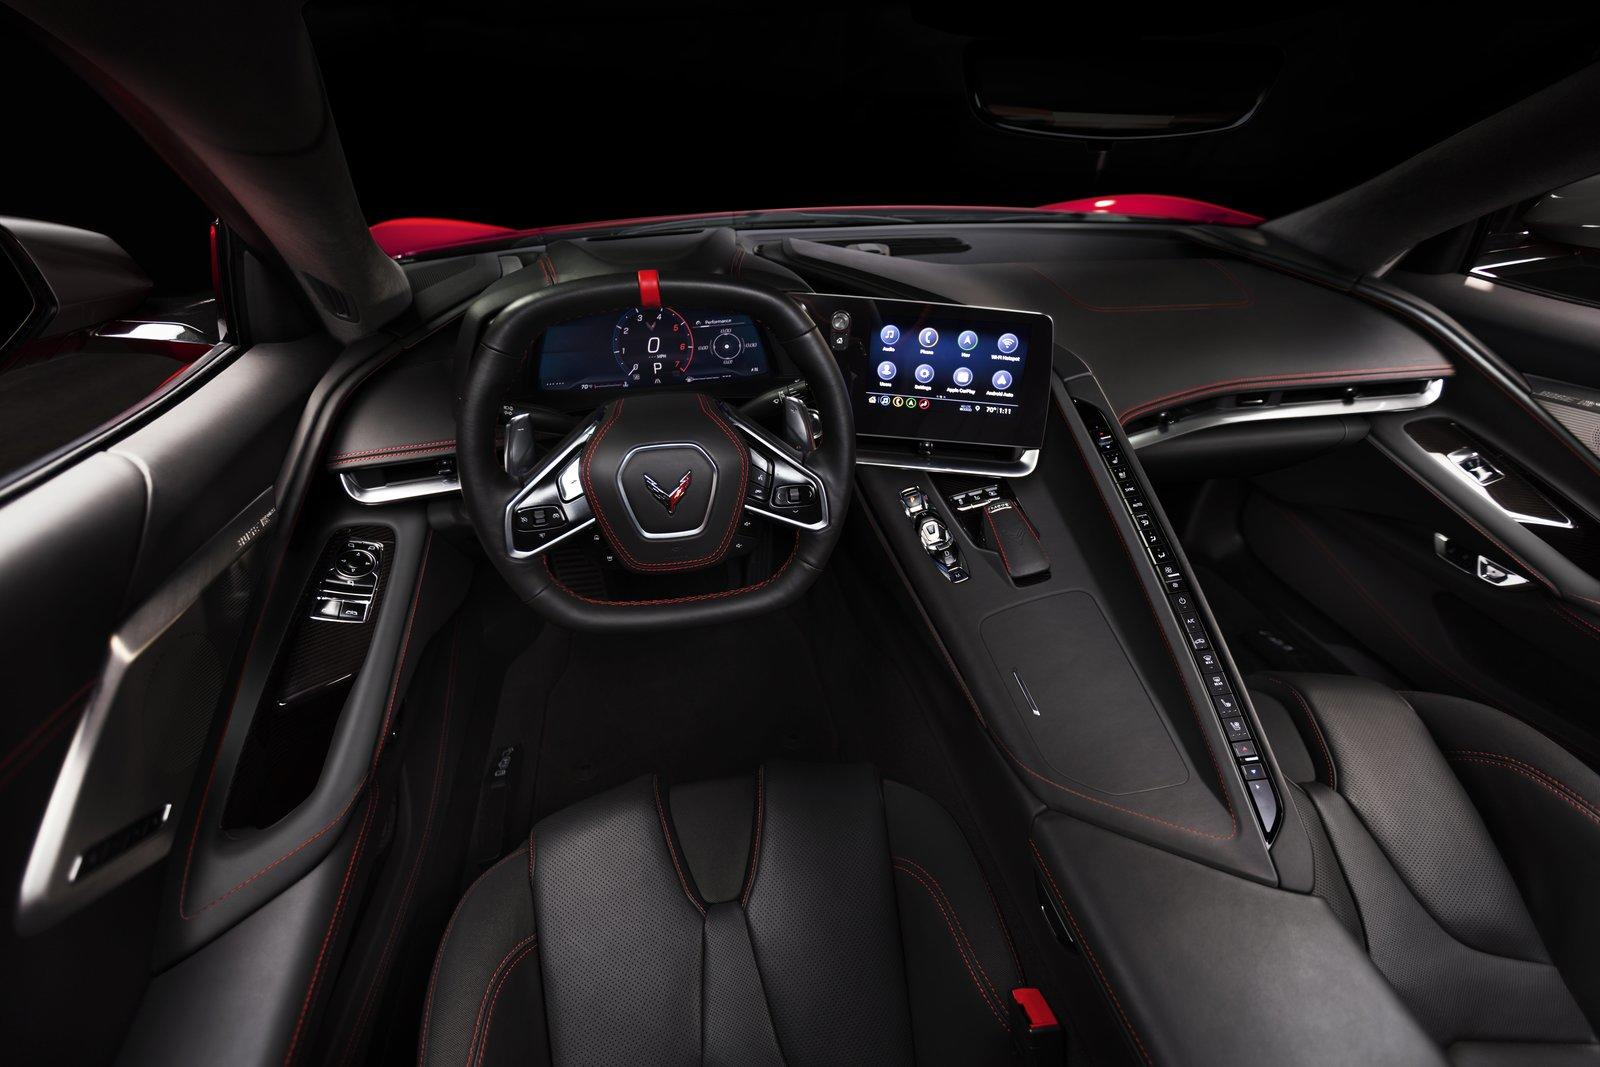 How Much To Detail A Car >> Wait, The All-New 2020 Chevrolet Corvette C8 Is Priced How Much?! | Top Speed